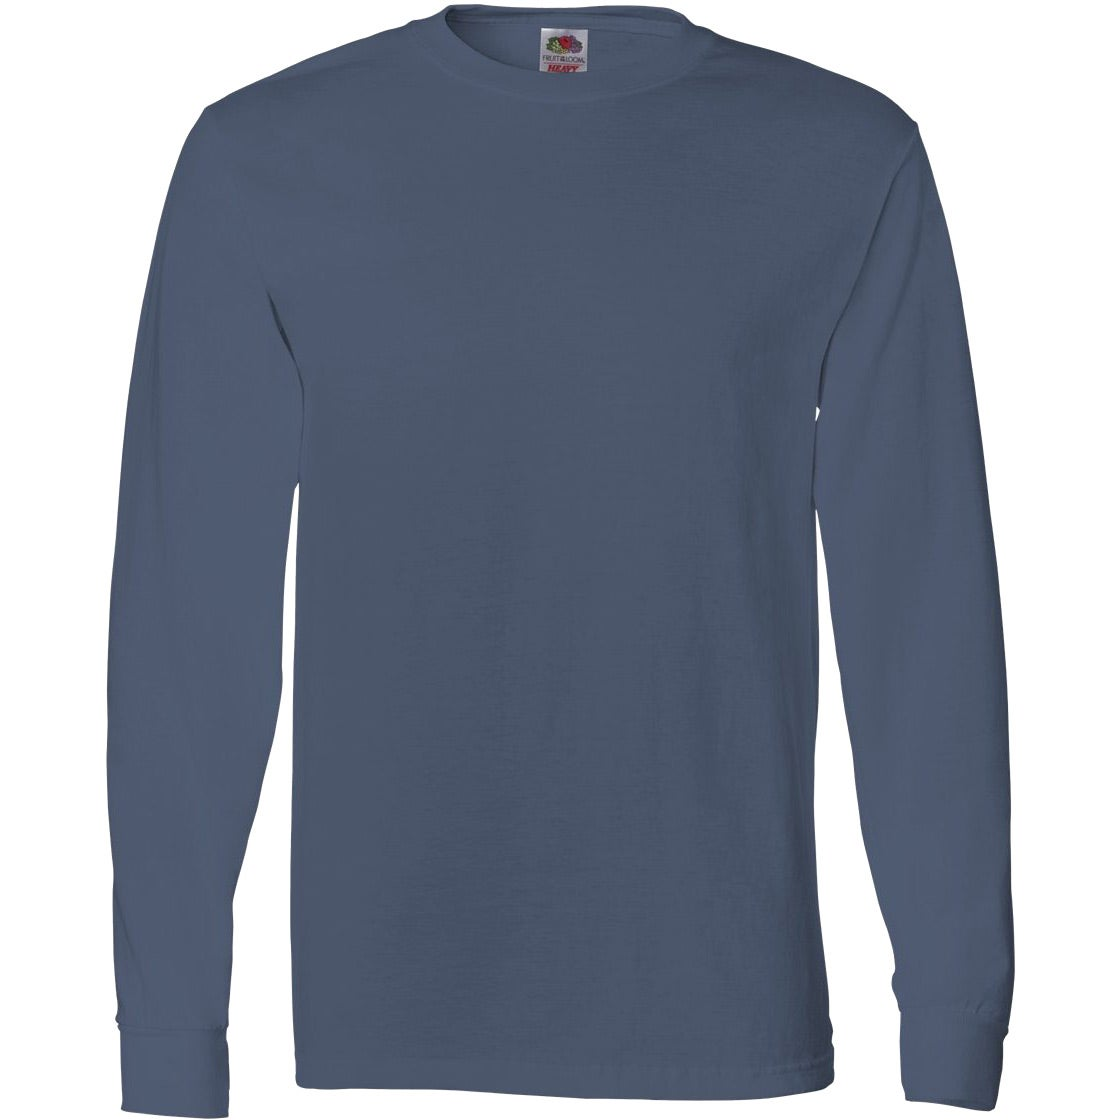 Imprinted fruit of the loom long sleeve cotton t shirt for Good quality long sleeve t shirts